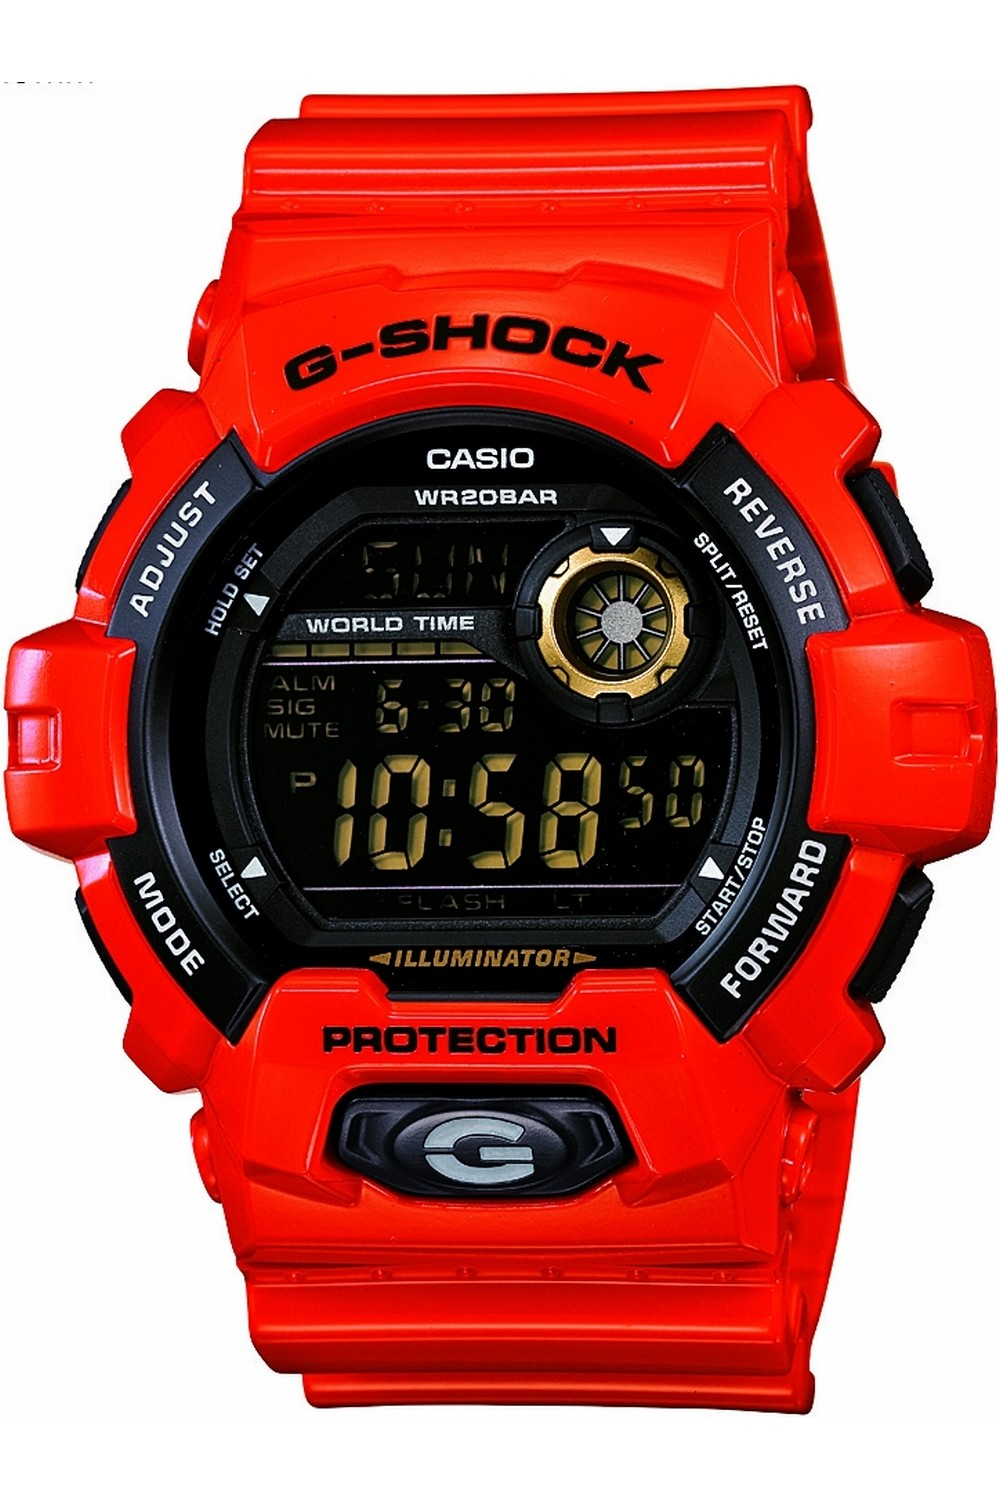 red watches 2015 humble watches casio red watches